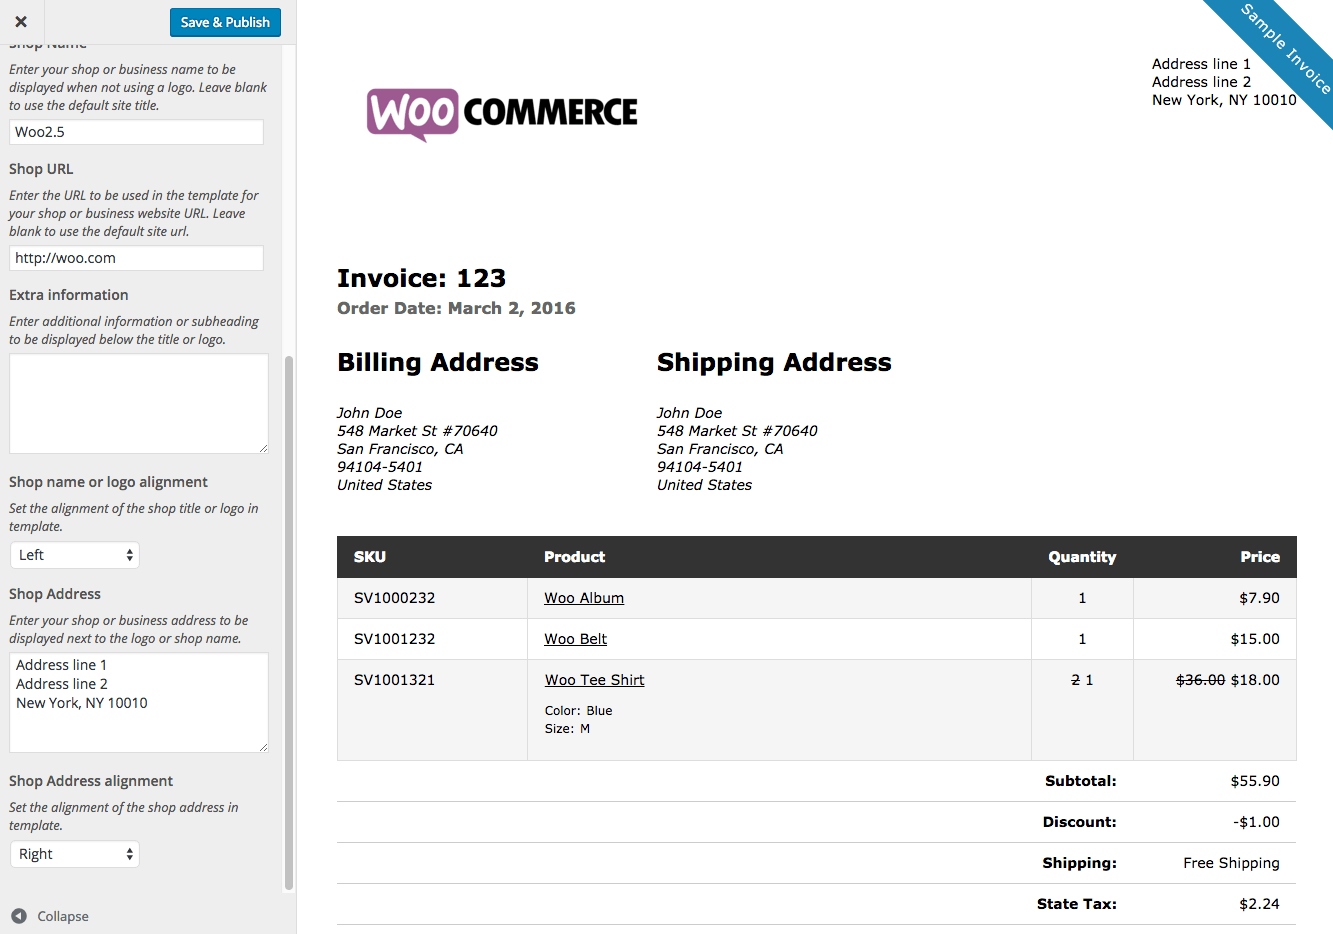 Pigbrotherus  Stunning Print Invoices Amp Packing Lists  Woocommerce With Interesting Woocommerce Print Invoices  Packing Lists Customizer With Amazing Rental Receipts Template Also Neat Receipts Customer Service In Addition Tenancy Deposit Receipt And Sales Receipt Software As Well As Receipt Copy Sample Additionally Online Receipt For Lic Premium From Woocommercecom With Pigbrotherus  Interesting Print Invoices Amp Packing Lists  Woocommerce With Amazing Woocommerce Print Invoices  Packing Lists Customizer And Stunning Rental Receipts Template Also Neat Receipts Customer Service In Addition Tenancy Deposit Receipt From Woocommercecom